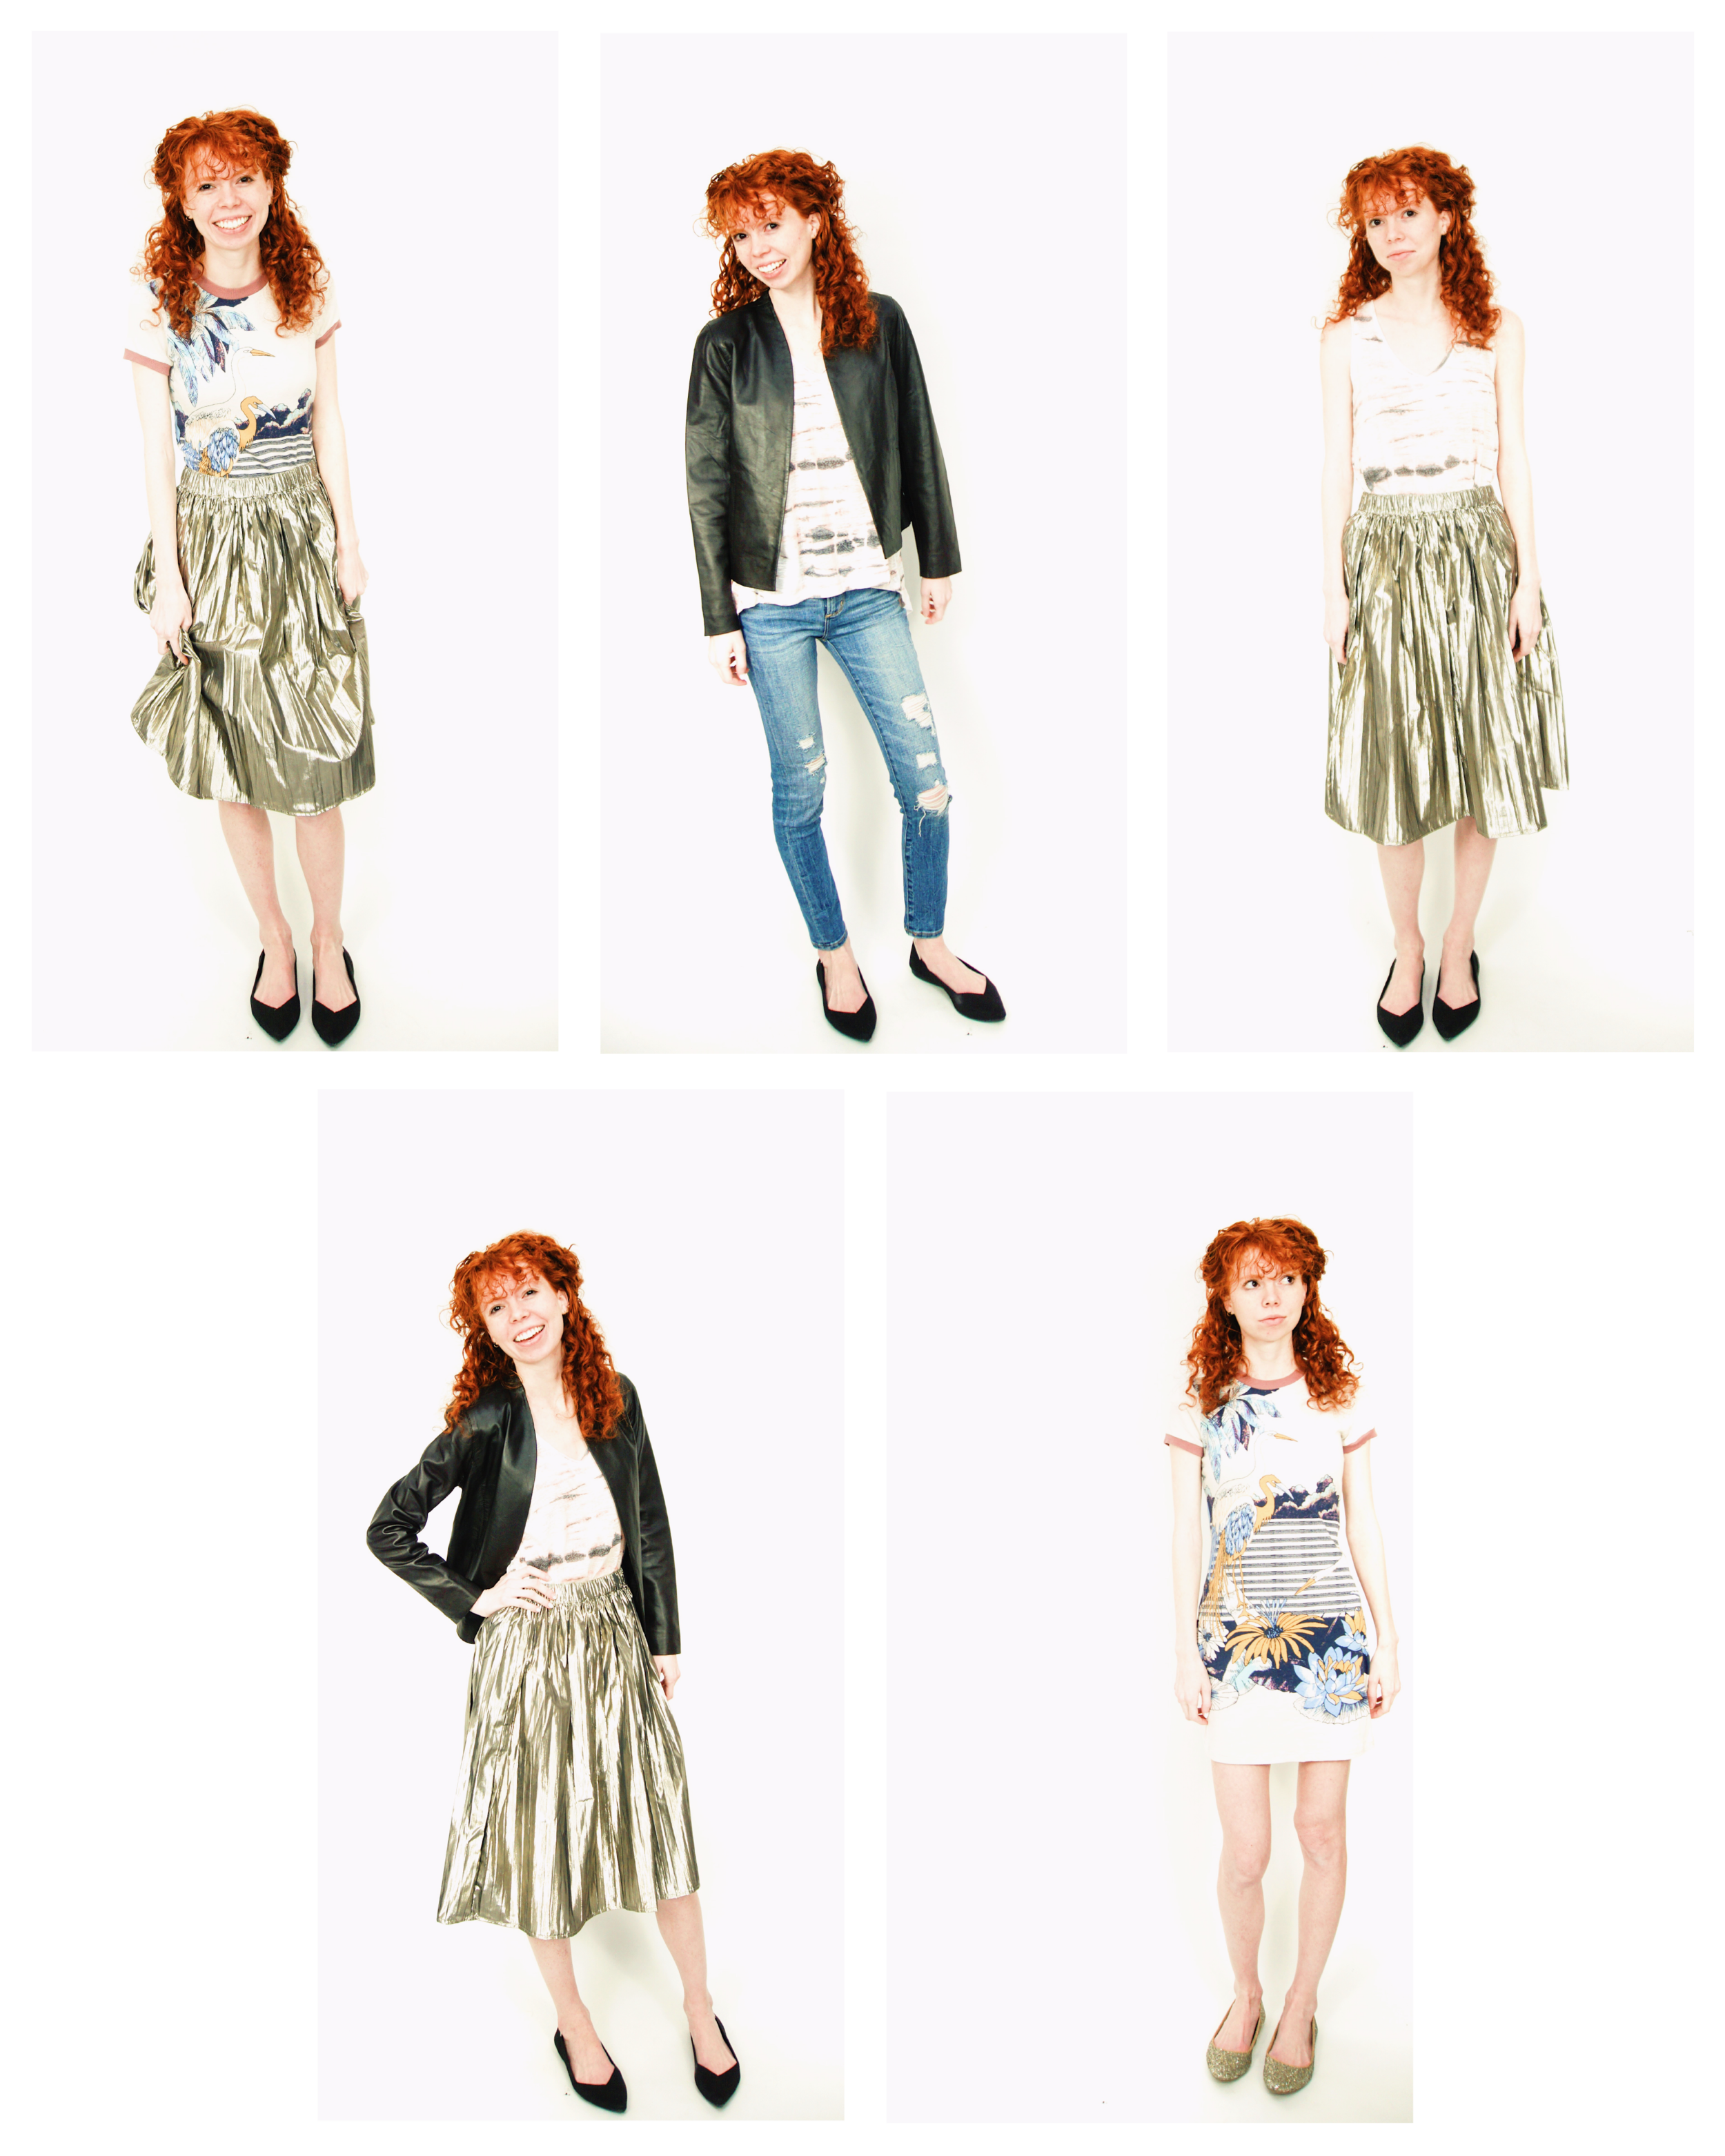 Who knew tie dye was making a comeback? At least, in my closet. This capsule includes a tie dye tank, one shiny shiny skirt, a leather blazer, a graphic tee dress, AND ripped jeans? Say what!